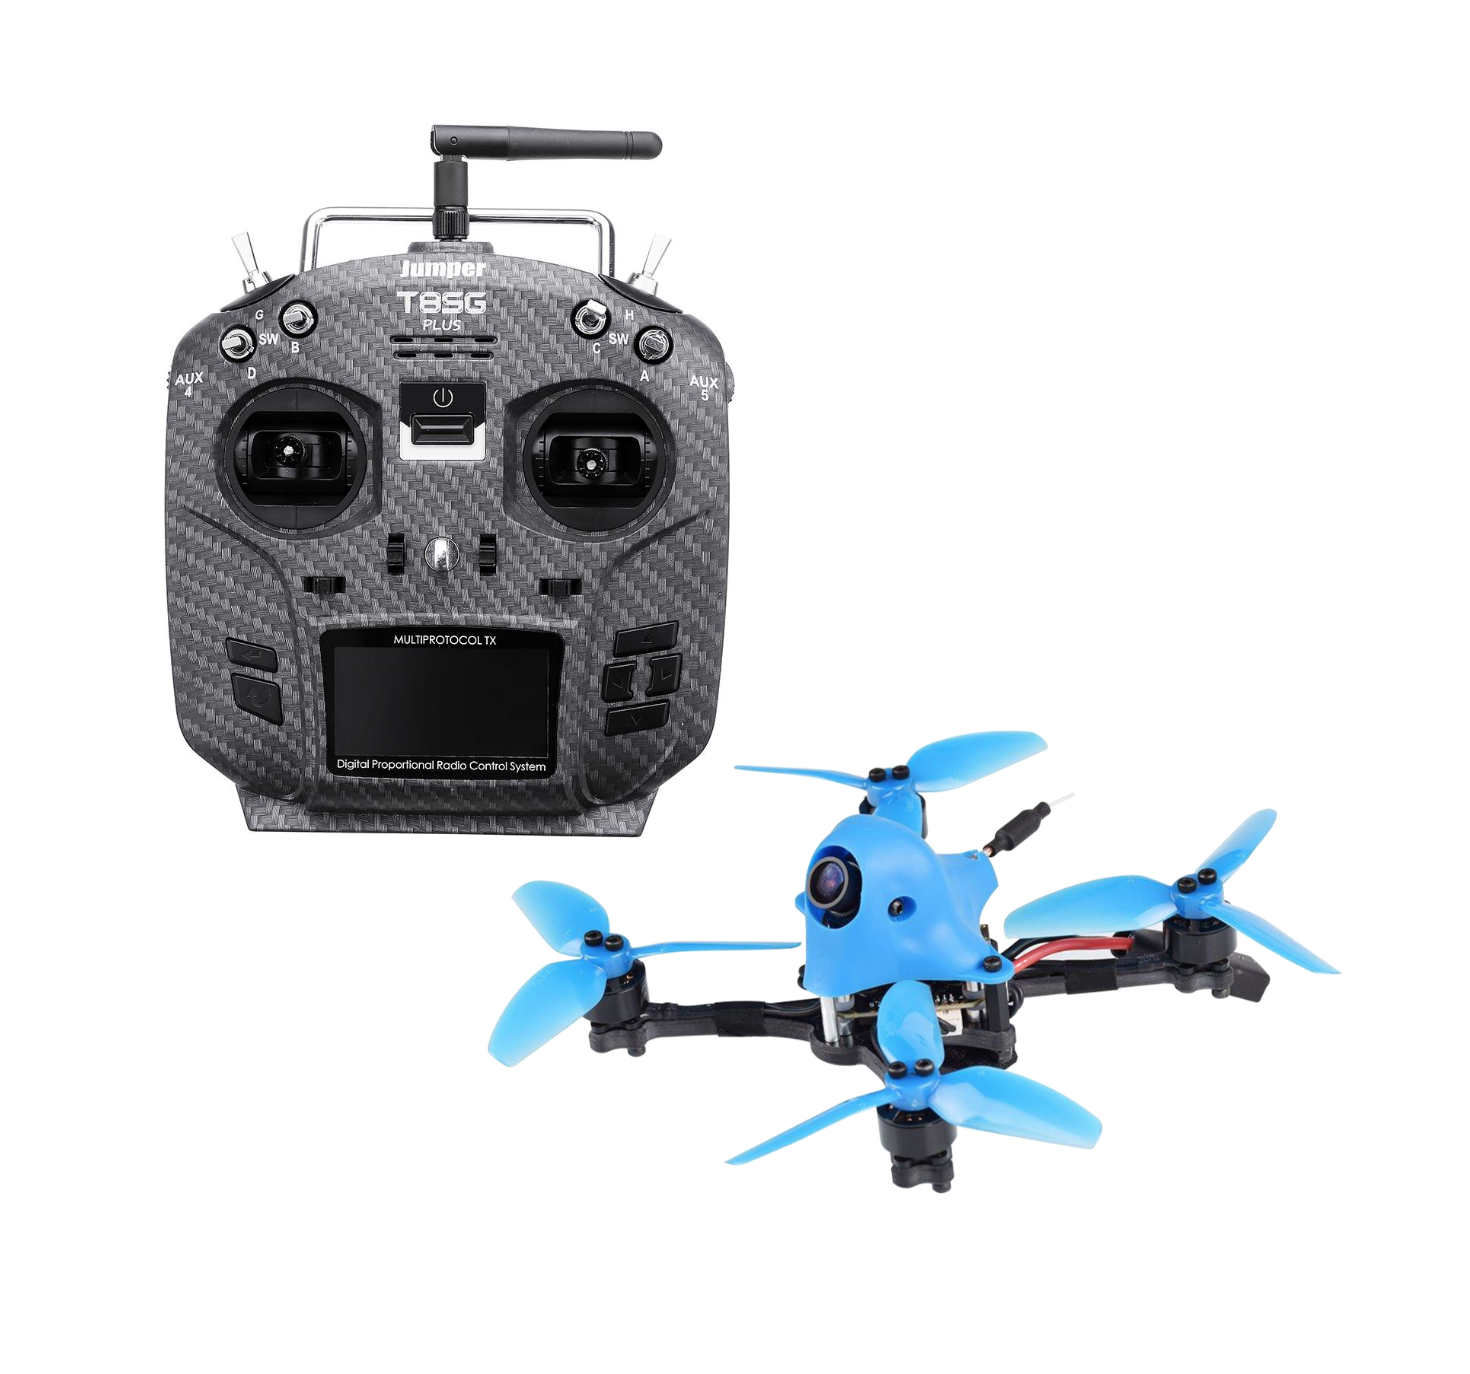 BetaFPV HX115 HD and Jumper T8SG Ready to fly Bundle